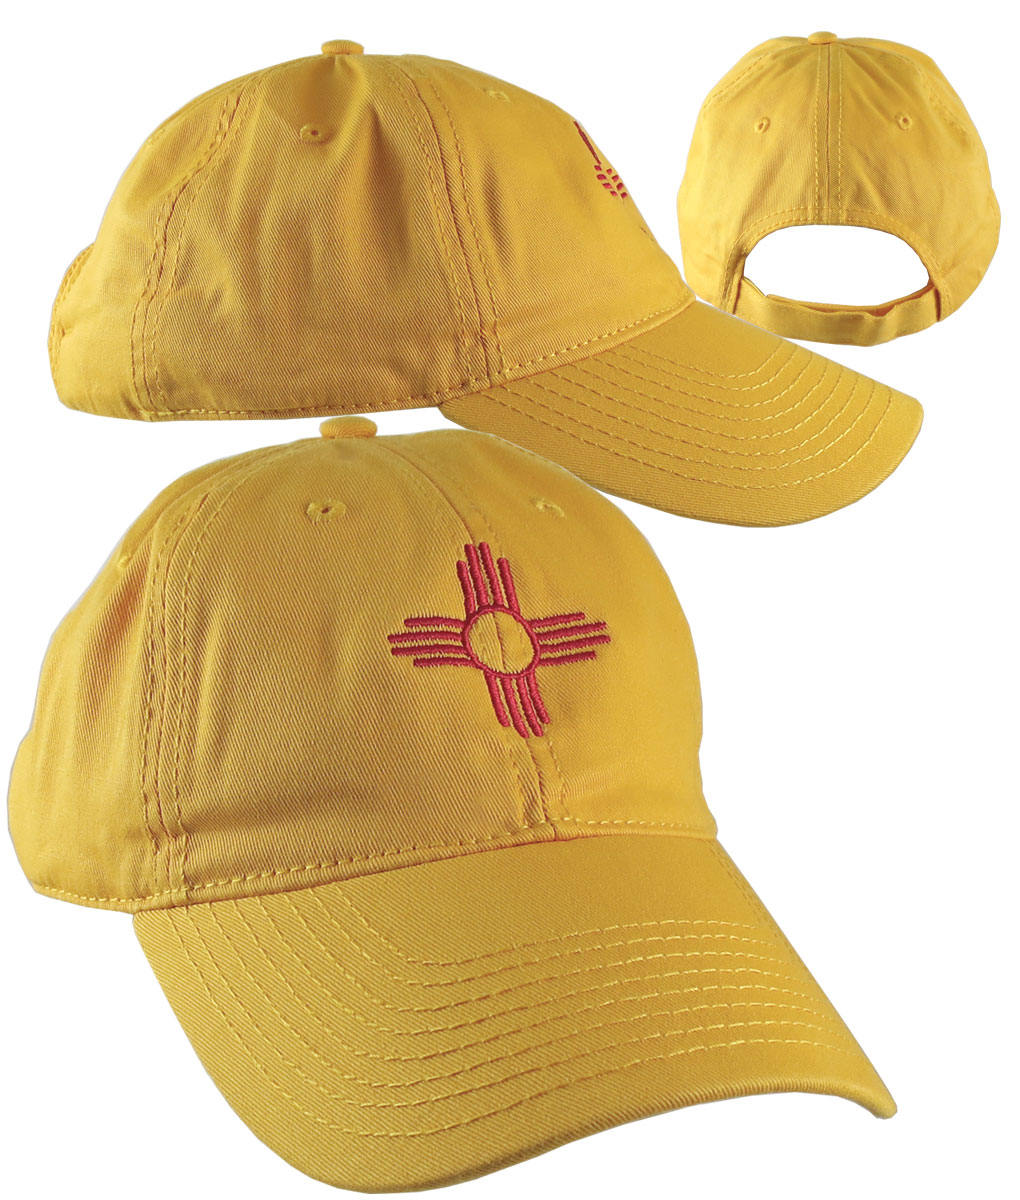 4984f3c7438 New Mexico State Flag Symbol Red Embroidery Design on an Adjustable Sun  Yellow Unstructured Classic Baseball Cap Dad Hat